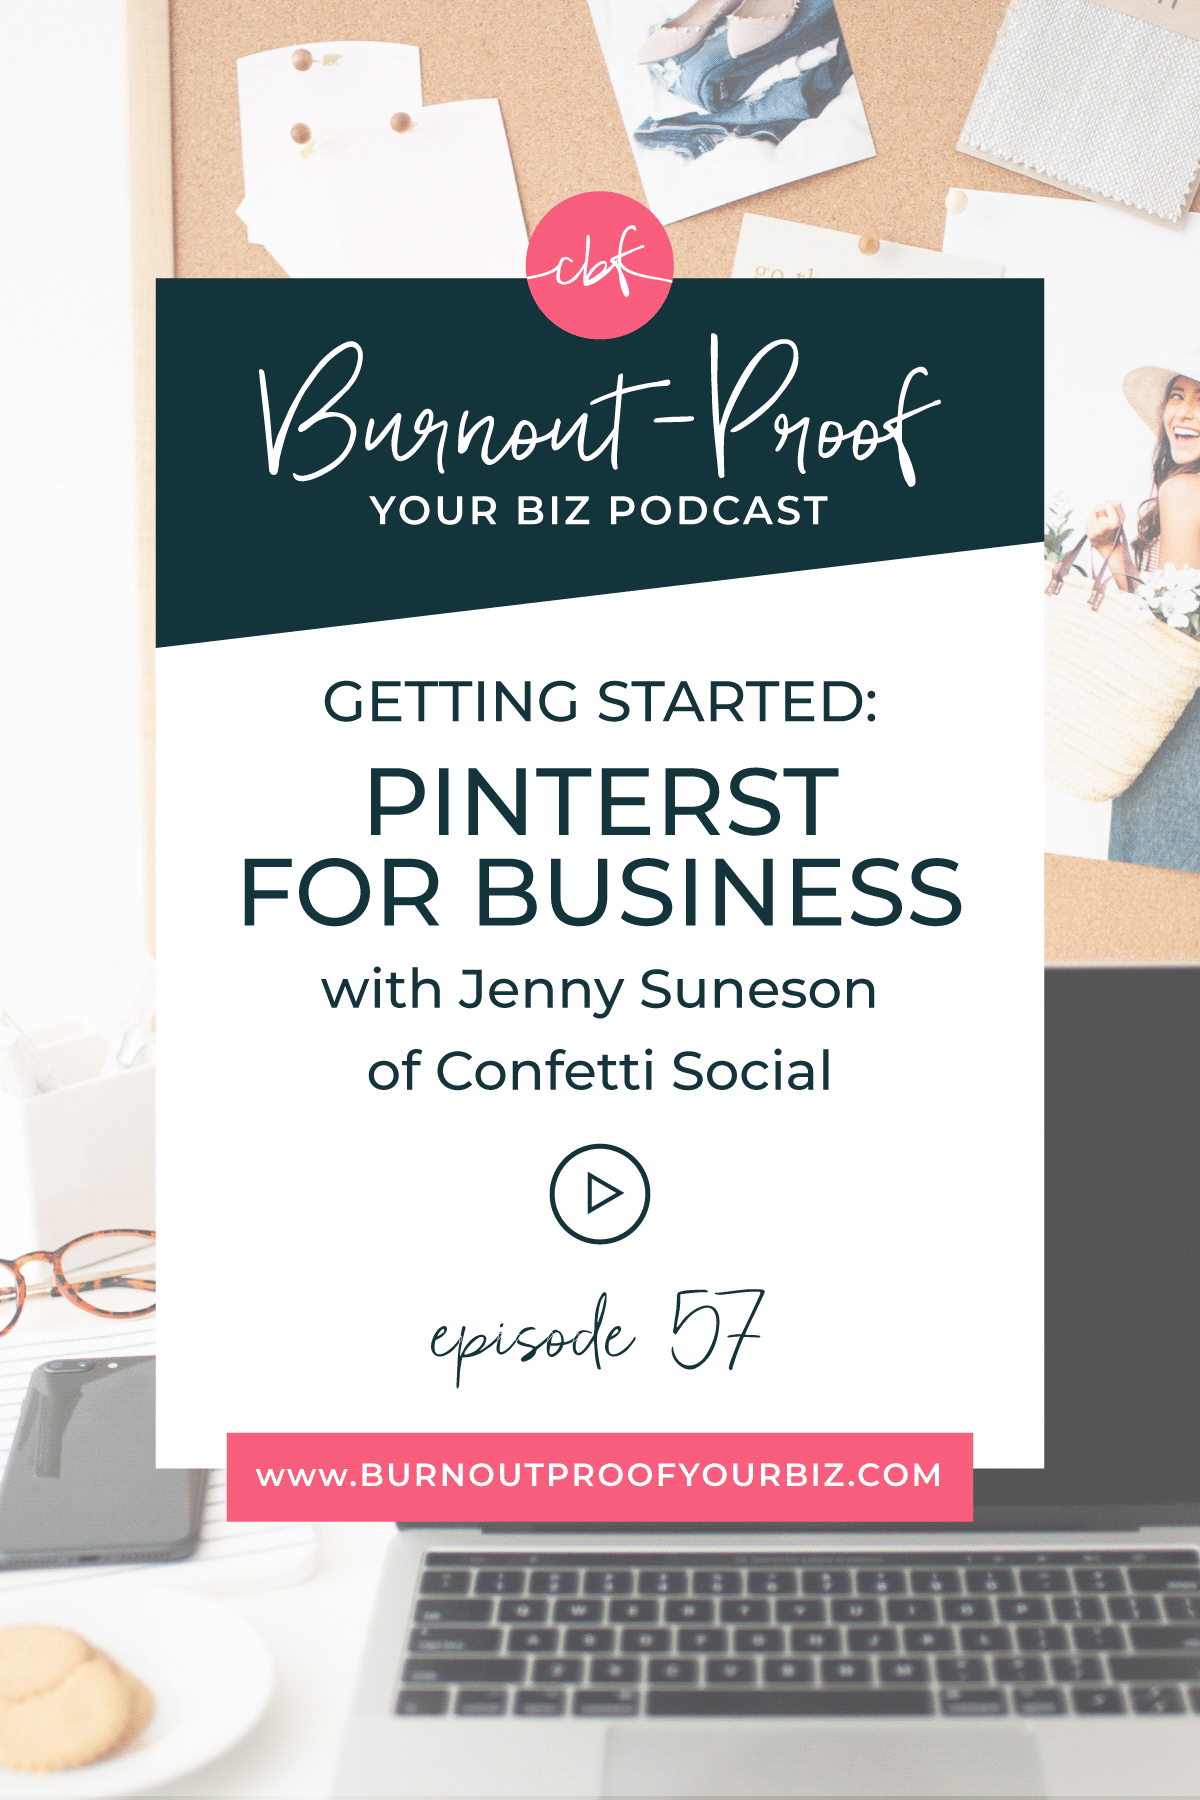 GETTING STARTED: PINTEREST FOR BUSINESS on the Burnout-Proof Your Biz Podcast with Chelsea B Foster | Episode 057 - Simple Steps to Start Utilizing Pinterest for Your Business with Jenny Suneson of Confetti Social | Learn how to run your biz and live your dream life on your own terms without the fear of burnout.  |||  PINTEREST STRATEGIES | PINTEREST FOR CREATIVES | TAILWIND FOR PINTEREST | GETTING STARTED WITH PINTEREST | SETTING UP YOUR PINTEREST BUSINESS ACCOUNT | PINTEREST ALGORITHM | WHY PINTEREST IS SO IMPORTANT | STEPS TO USE PINTEREST FOR YOUR BUSINESS | HOW TO USE PINTEREST FOR YOUR BUSINESS | BUSINESS COACH | WORKFLOW & PRODUCTIVITY SPECIALIST | SYSTEMS & ORGANIZATION SPECIALIST FOR COACHES | ADD MORE FREEDOM TO YOUR LIFE | BUSINESS COACH FOR BLOGGERS